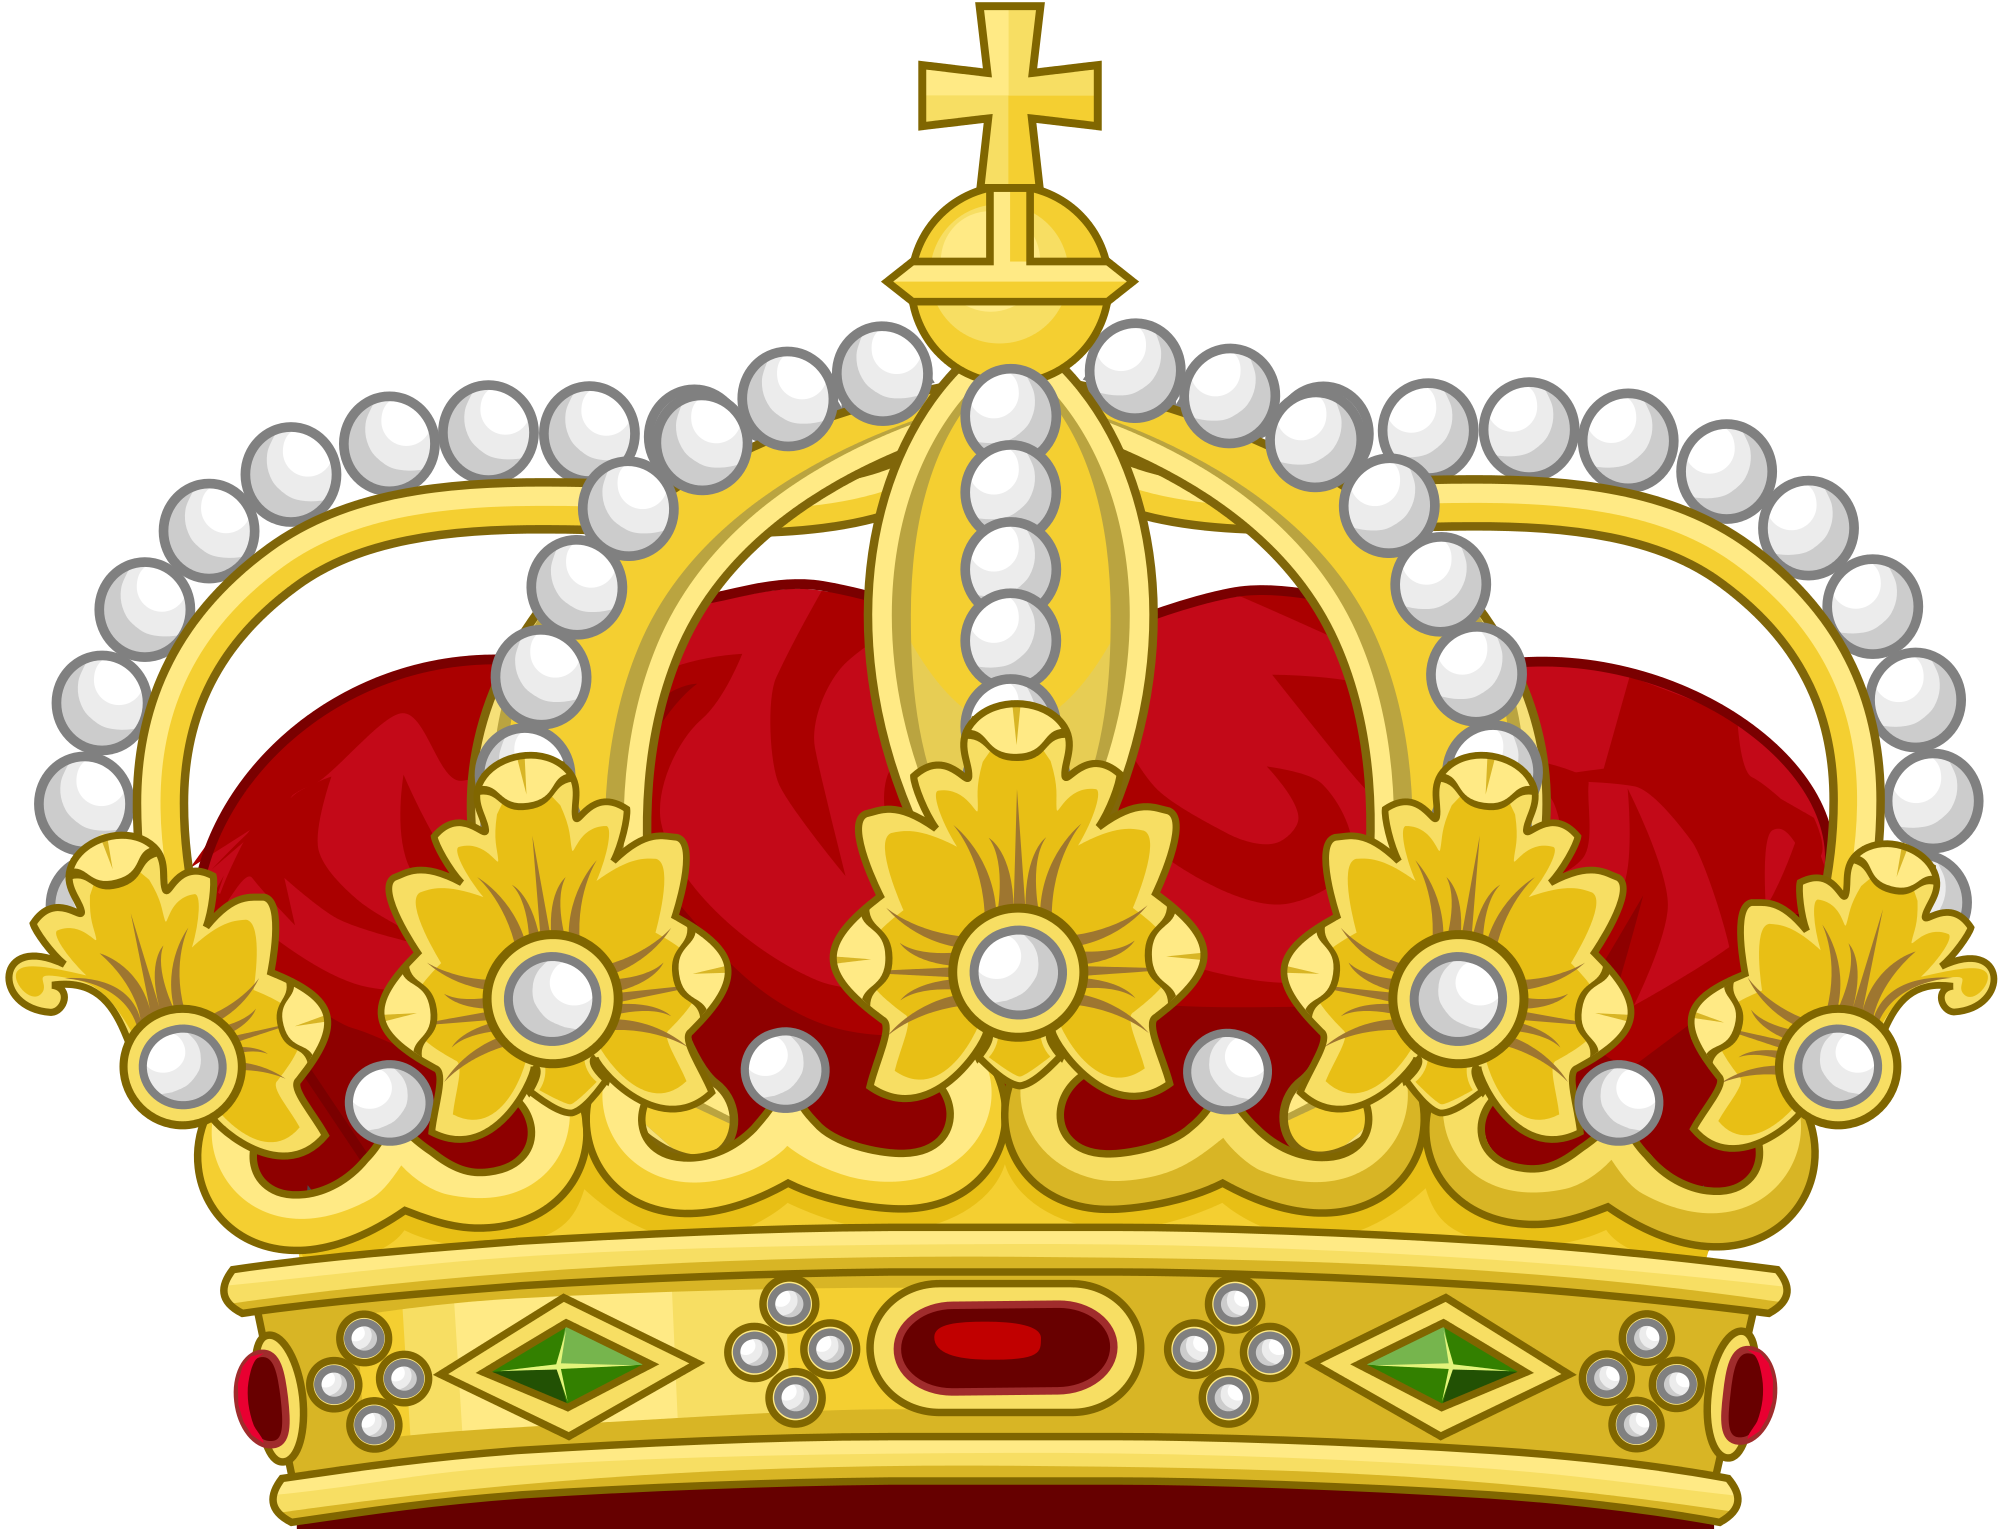 2000x1529 Fileheraldic Royal Crown Of The King Of The Romans (18th Century